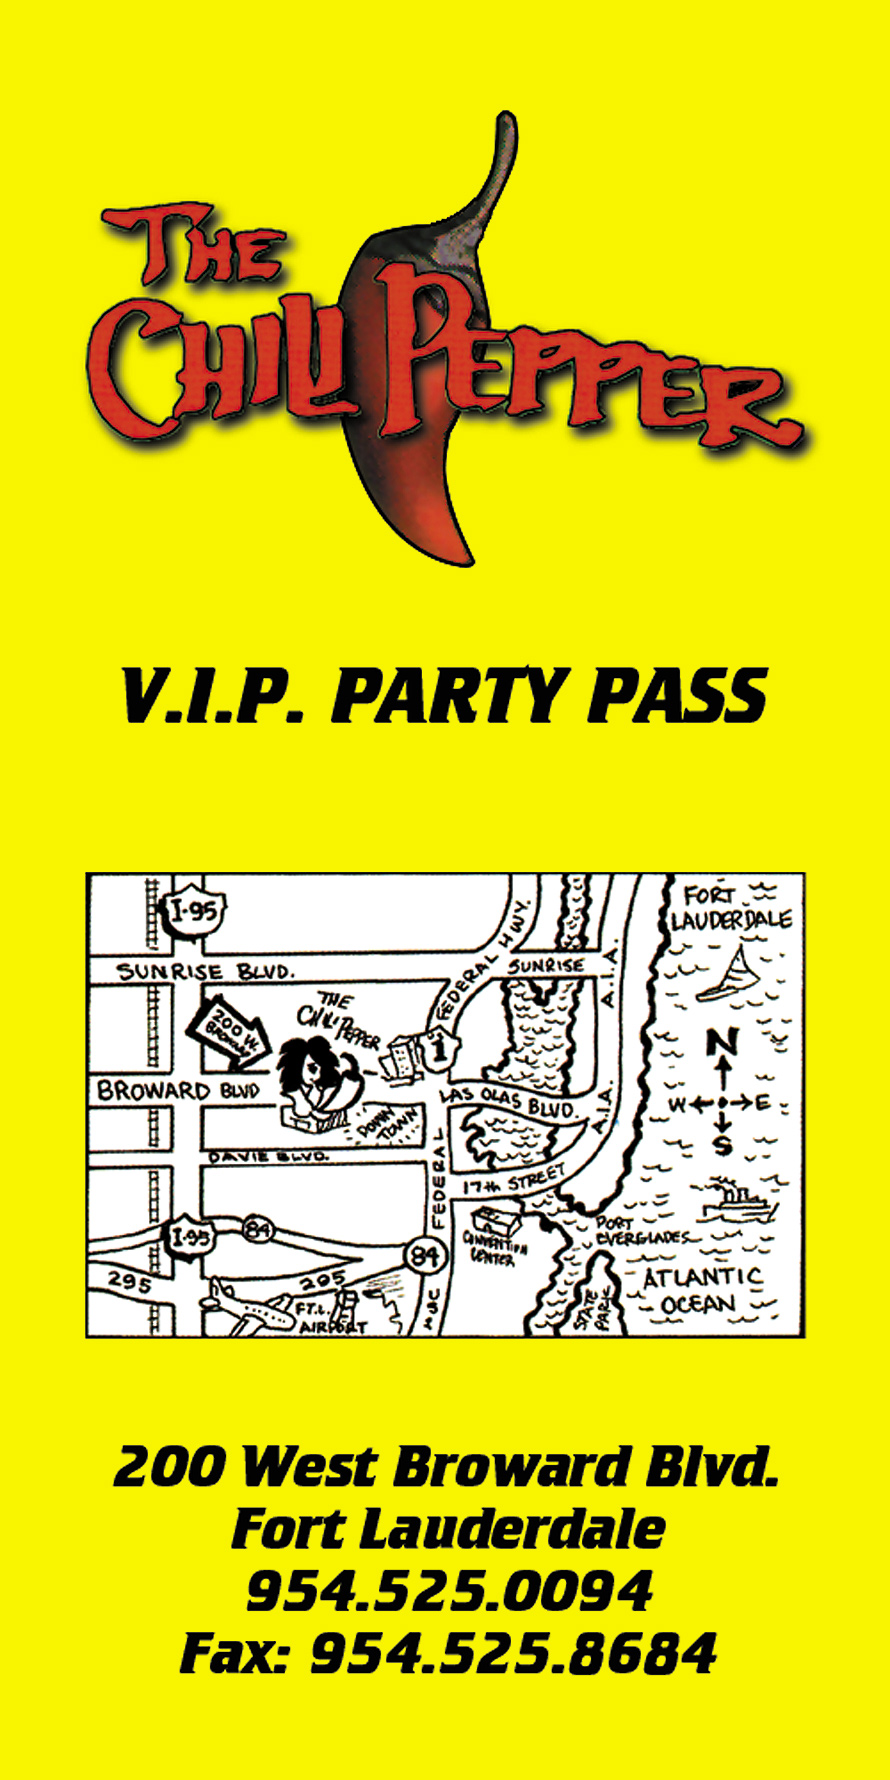 The Chili Pepper VIP Party Pass